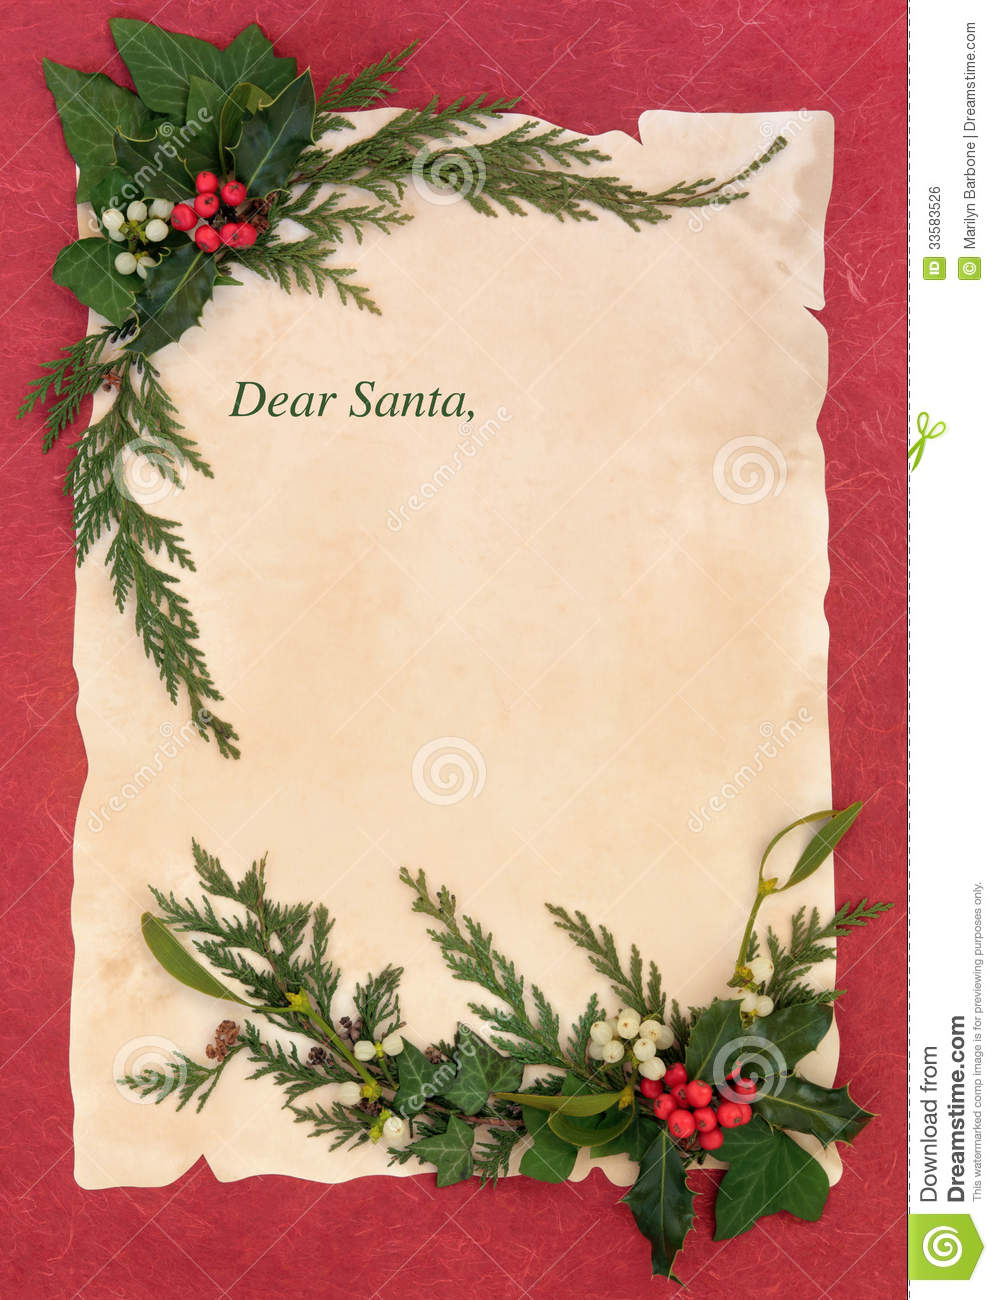 Christmas eve letter to santa claus with border of holly and winter ...